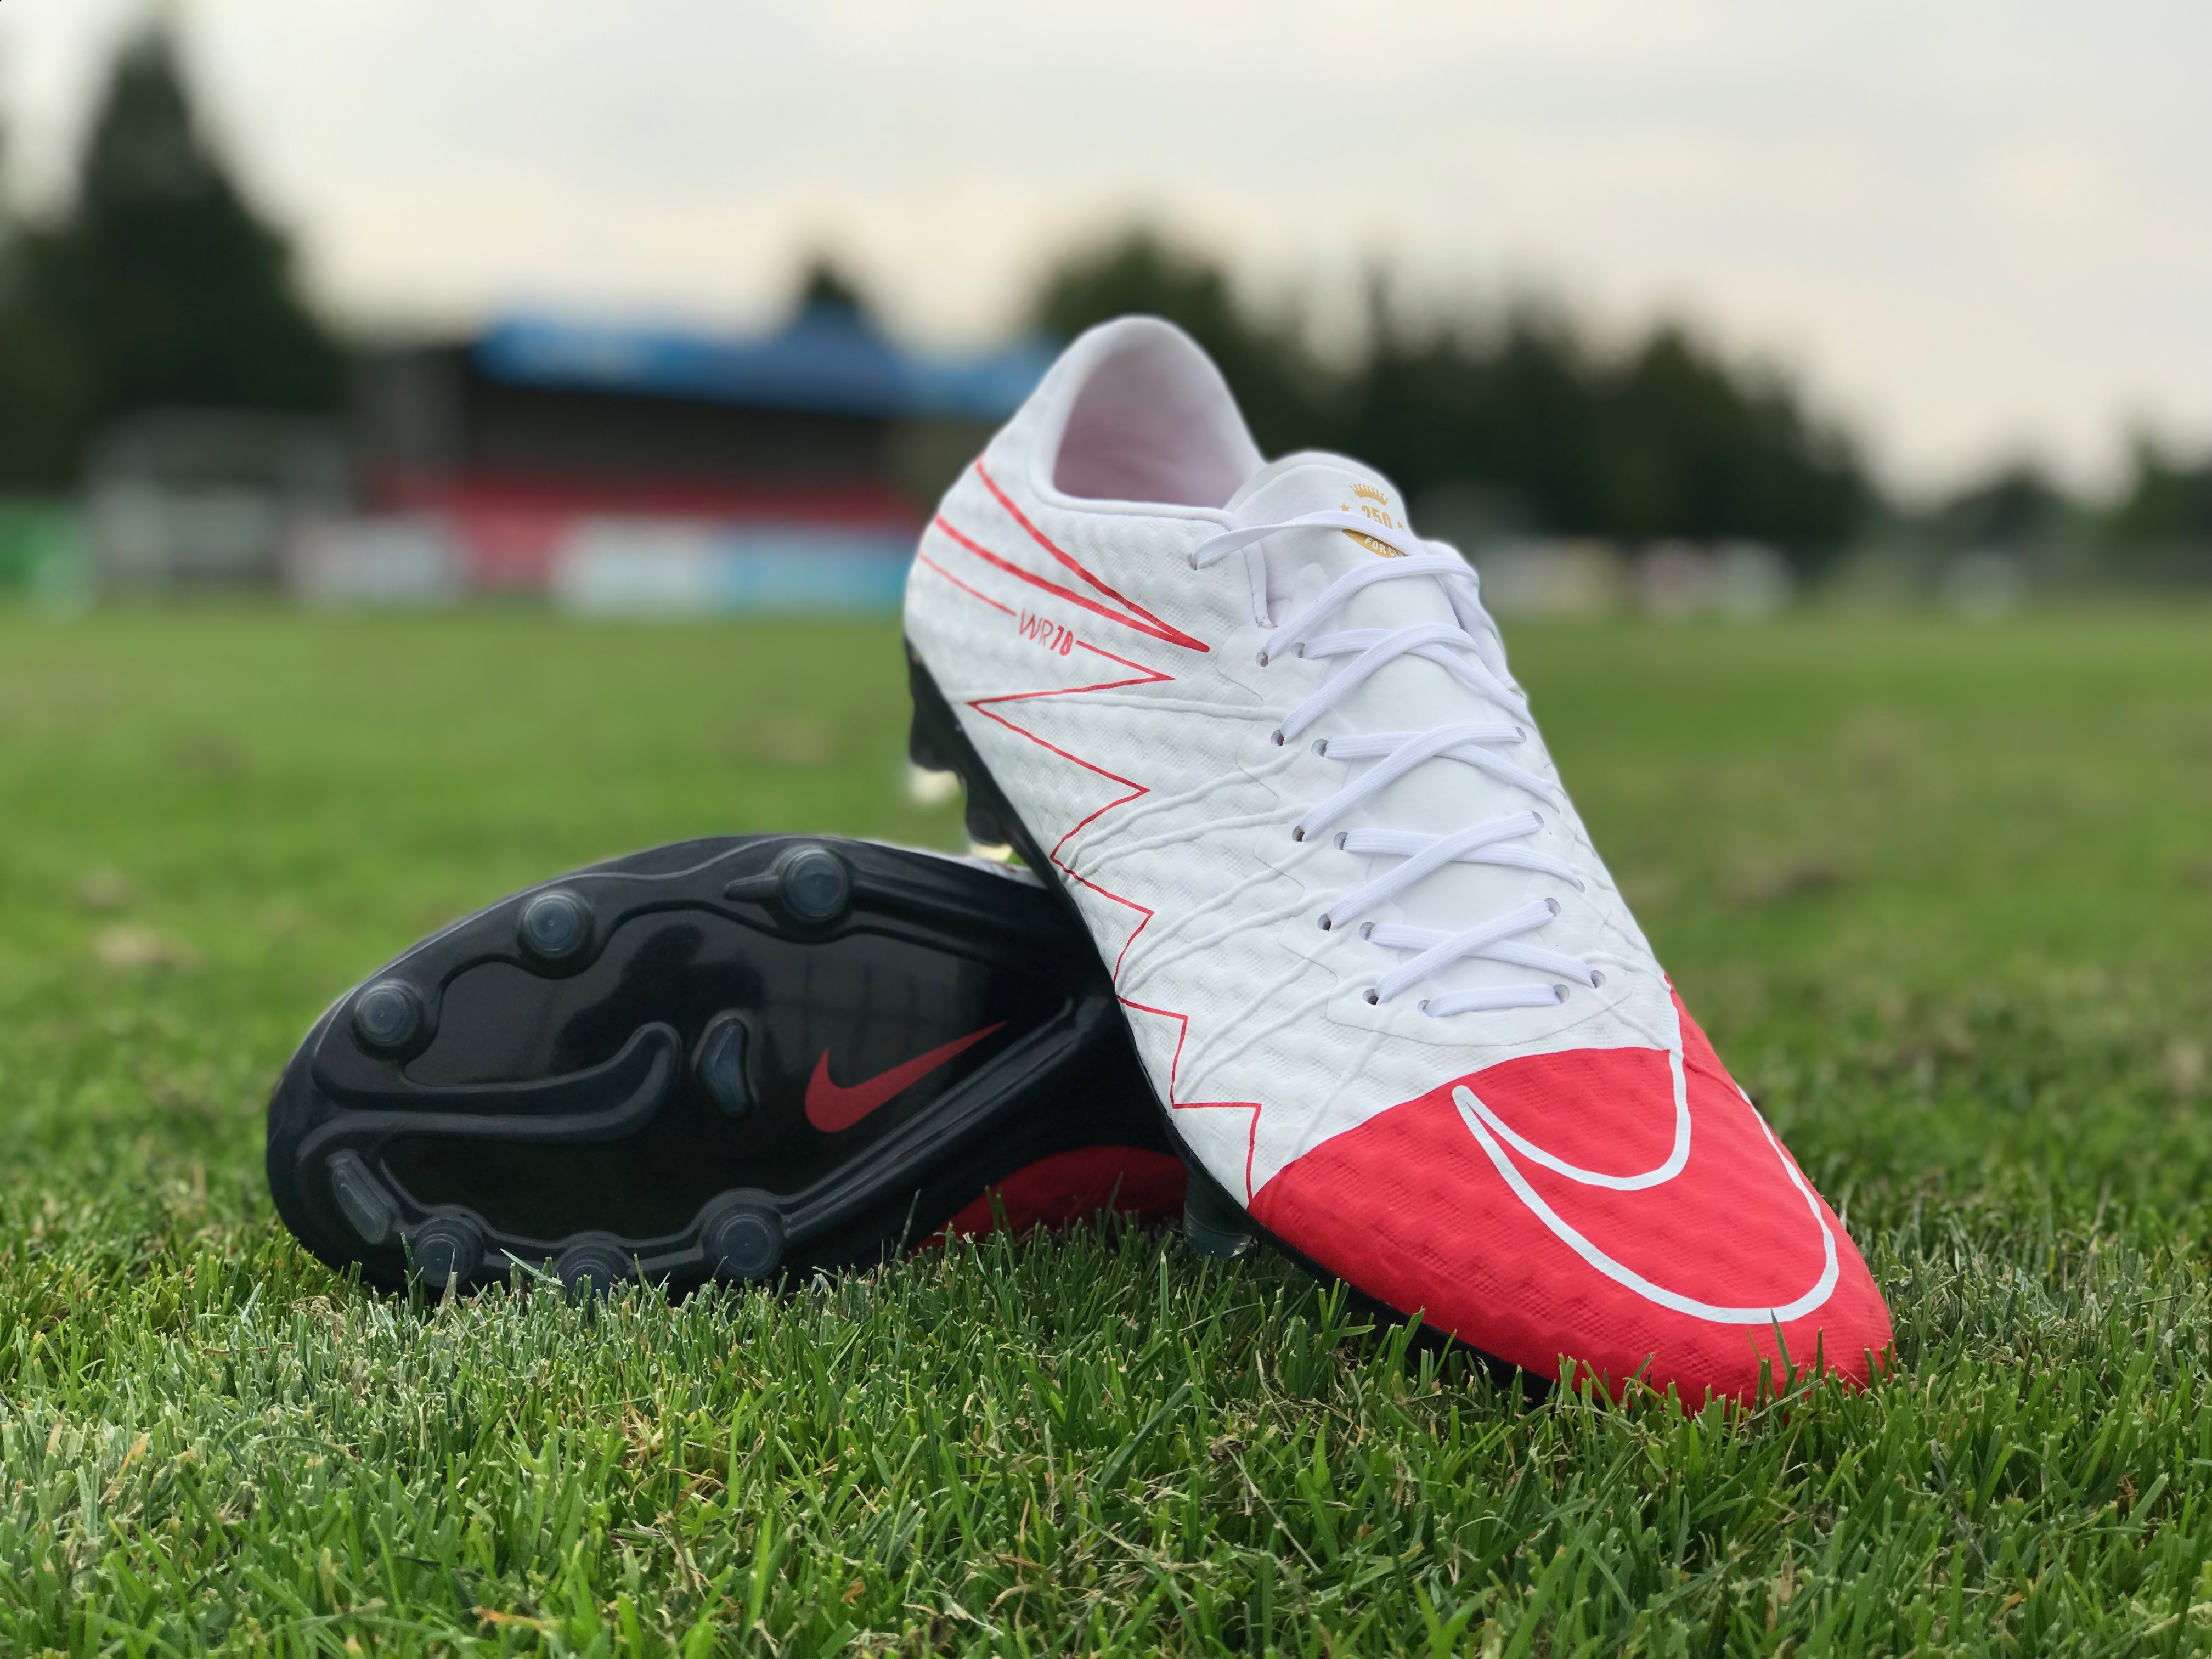 save off 24c3d c5077 2017 Nike Hypervenom Phinish FG WR250 - White/University Red LIMITED EDITION